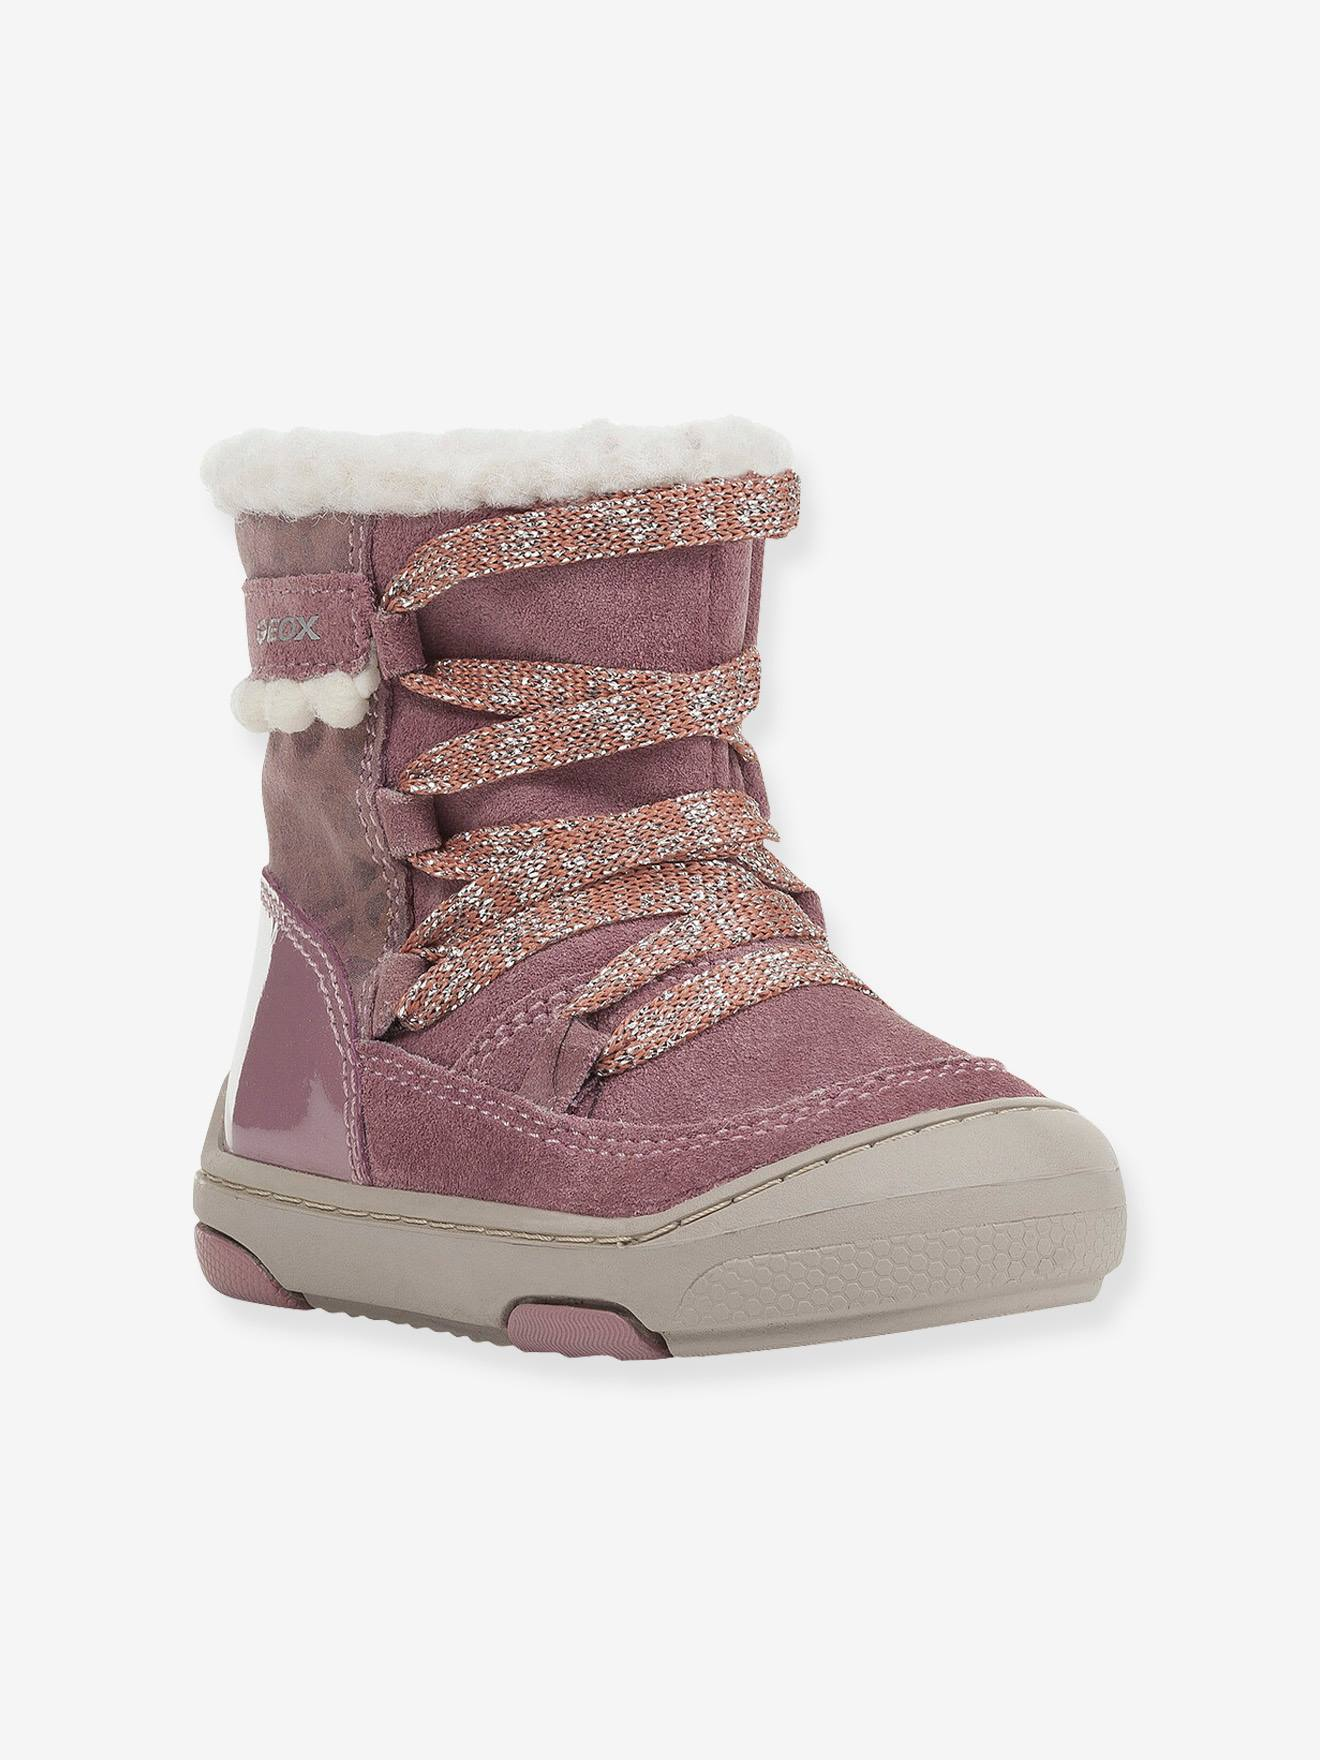 Fur-Lined Boots for Baby Girls, B Jayj